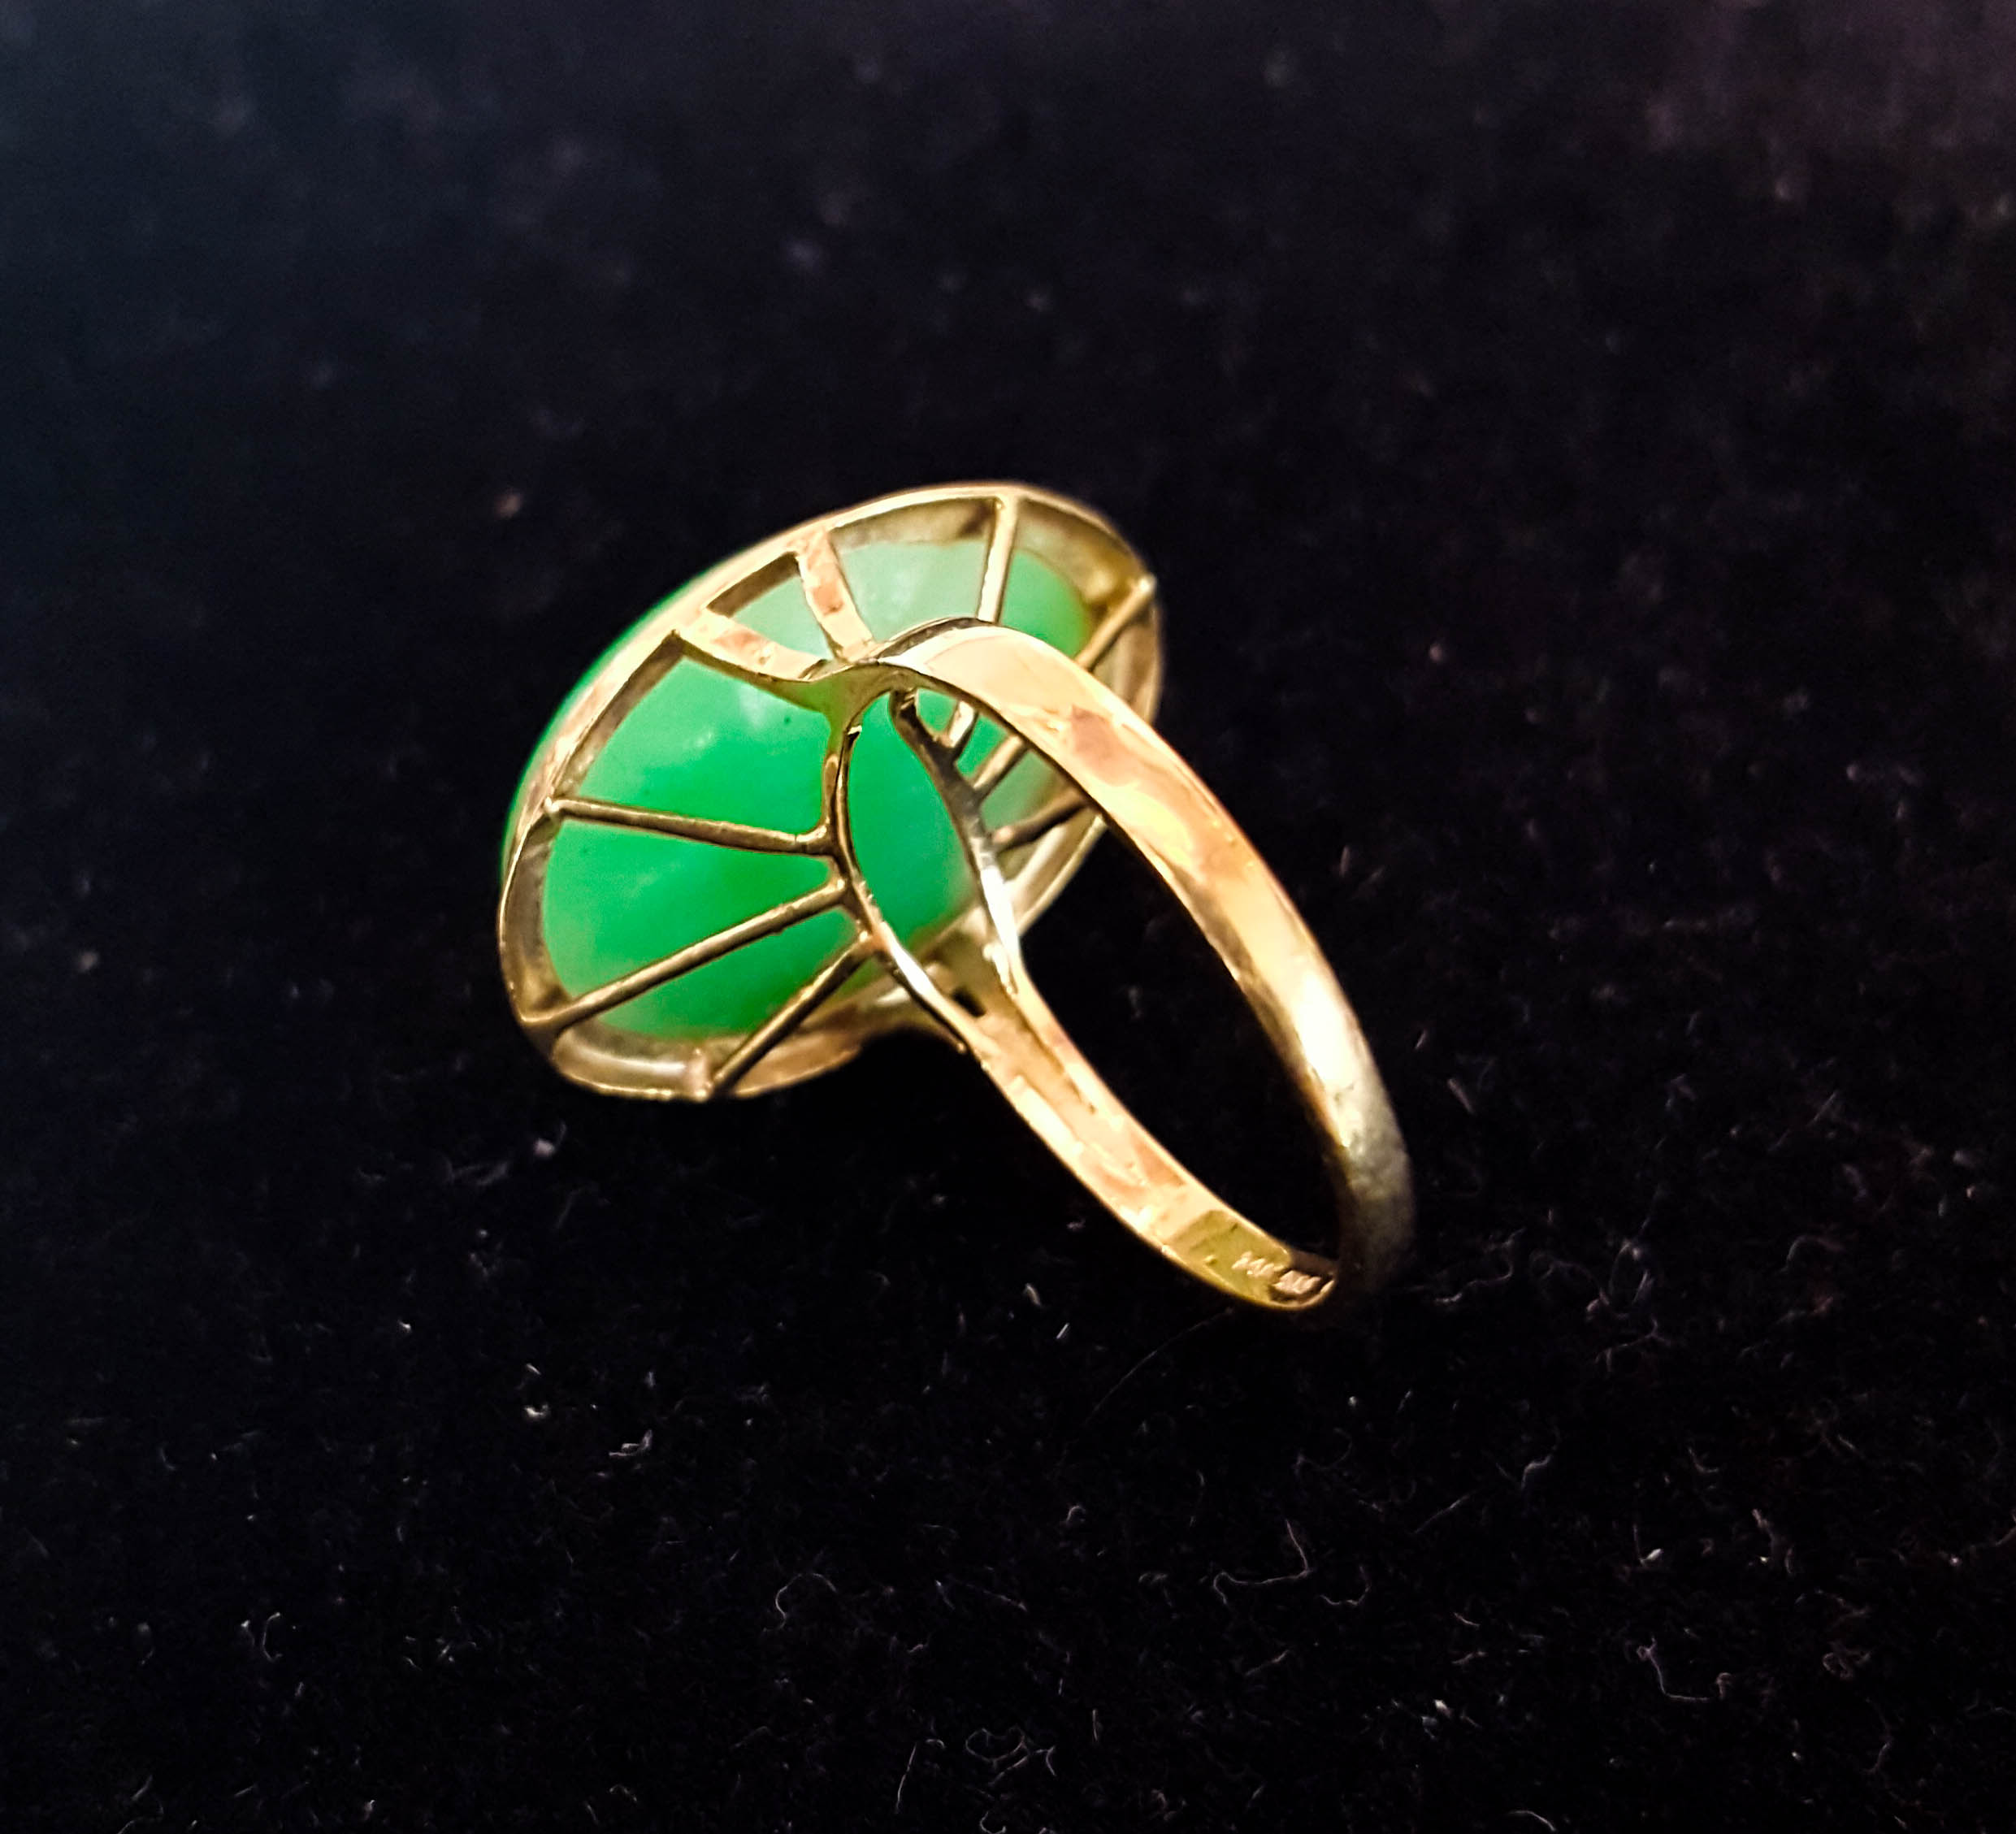 Vintage ring with parially open backing